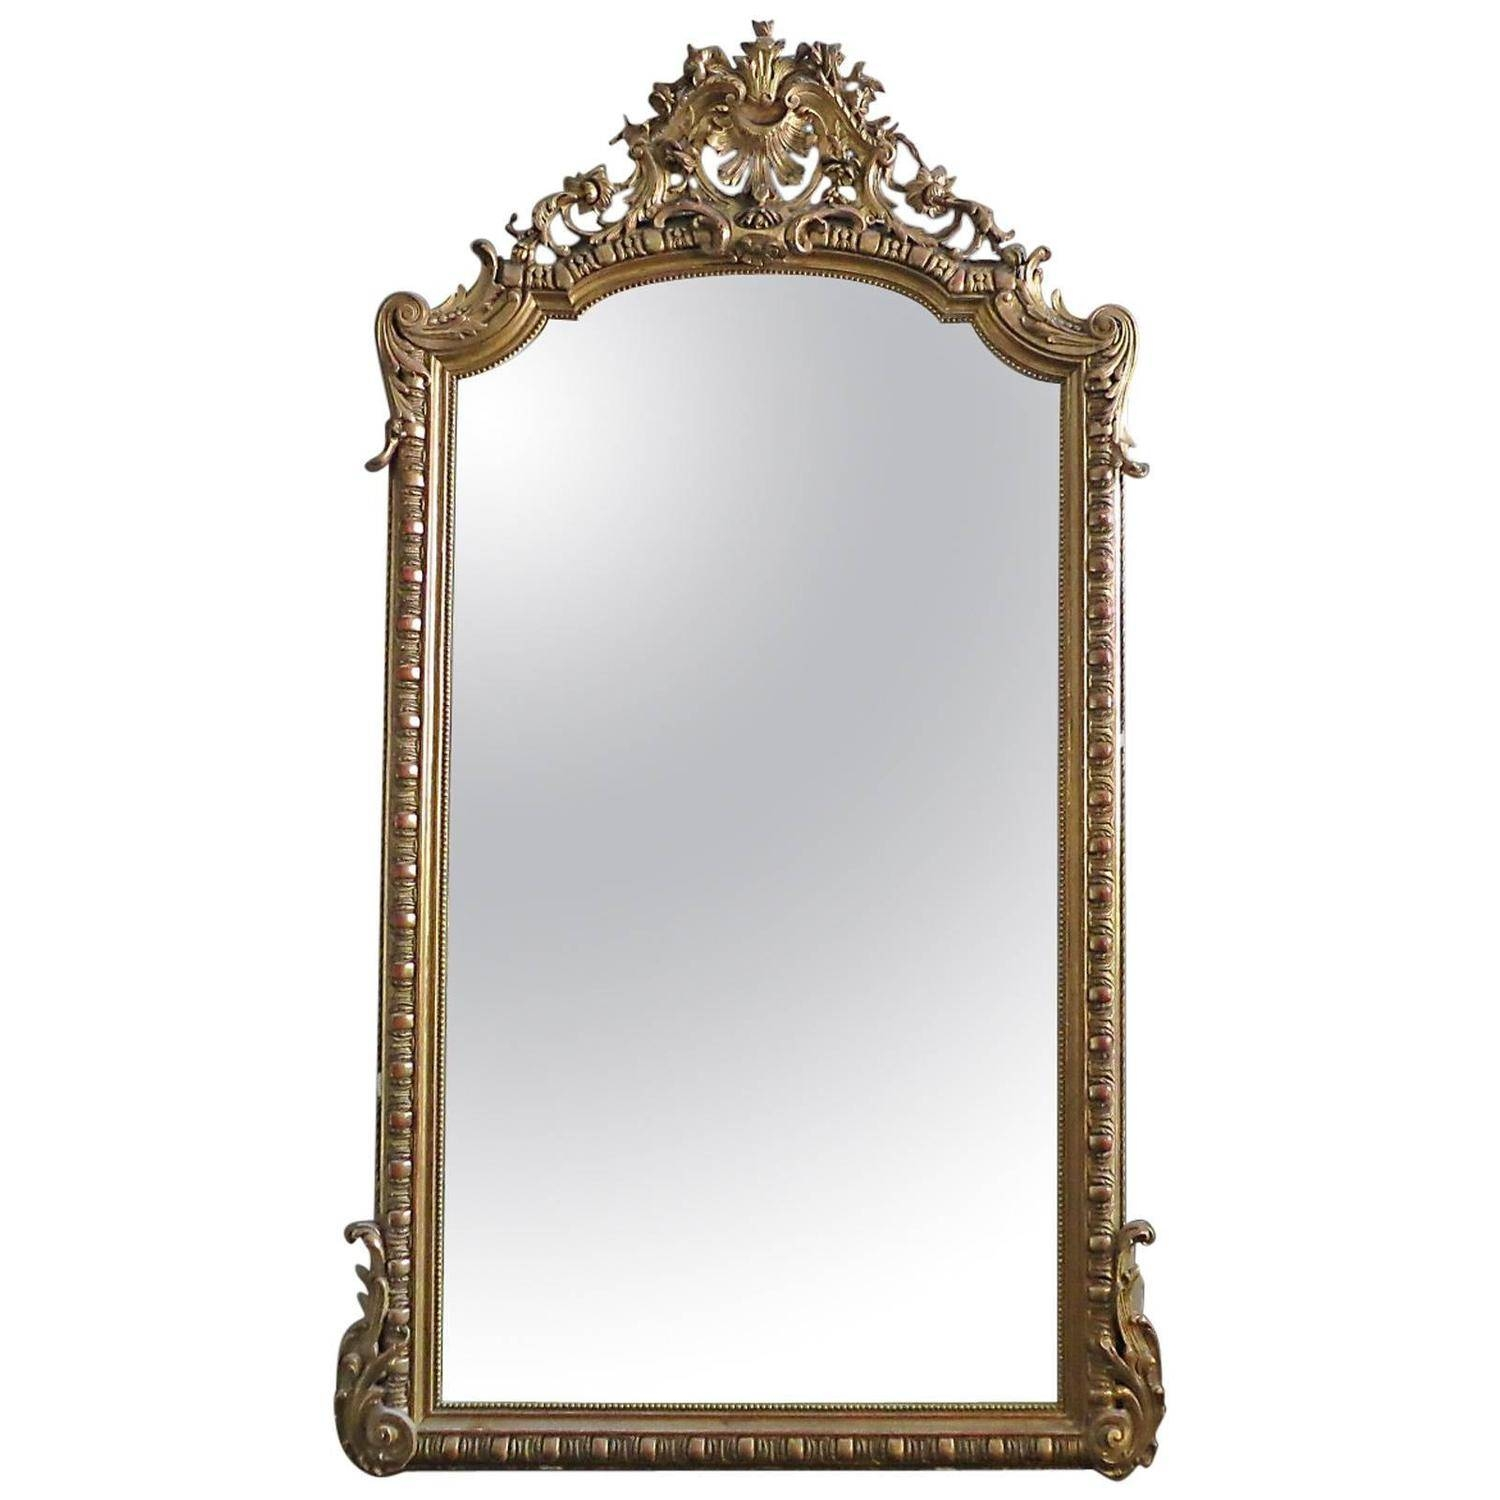 Large Antique French Gold Gilt Mirror At 1Stdibs pertaining to Antique Gold Mirrors (Image 19 of 25)